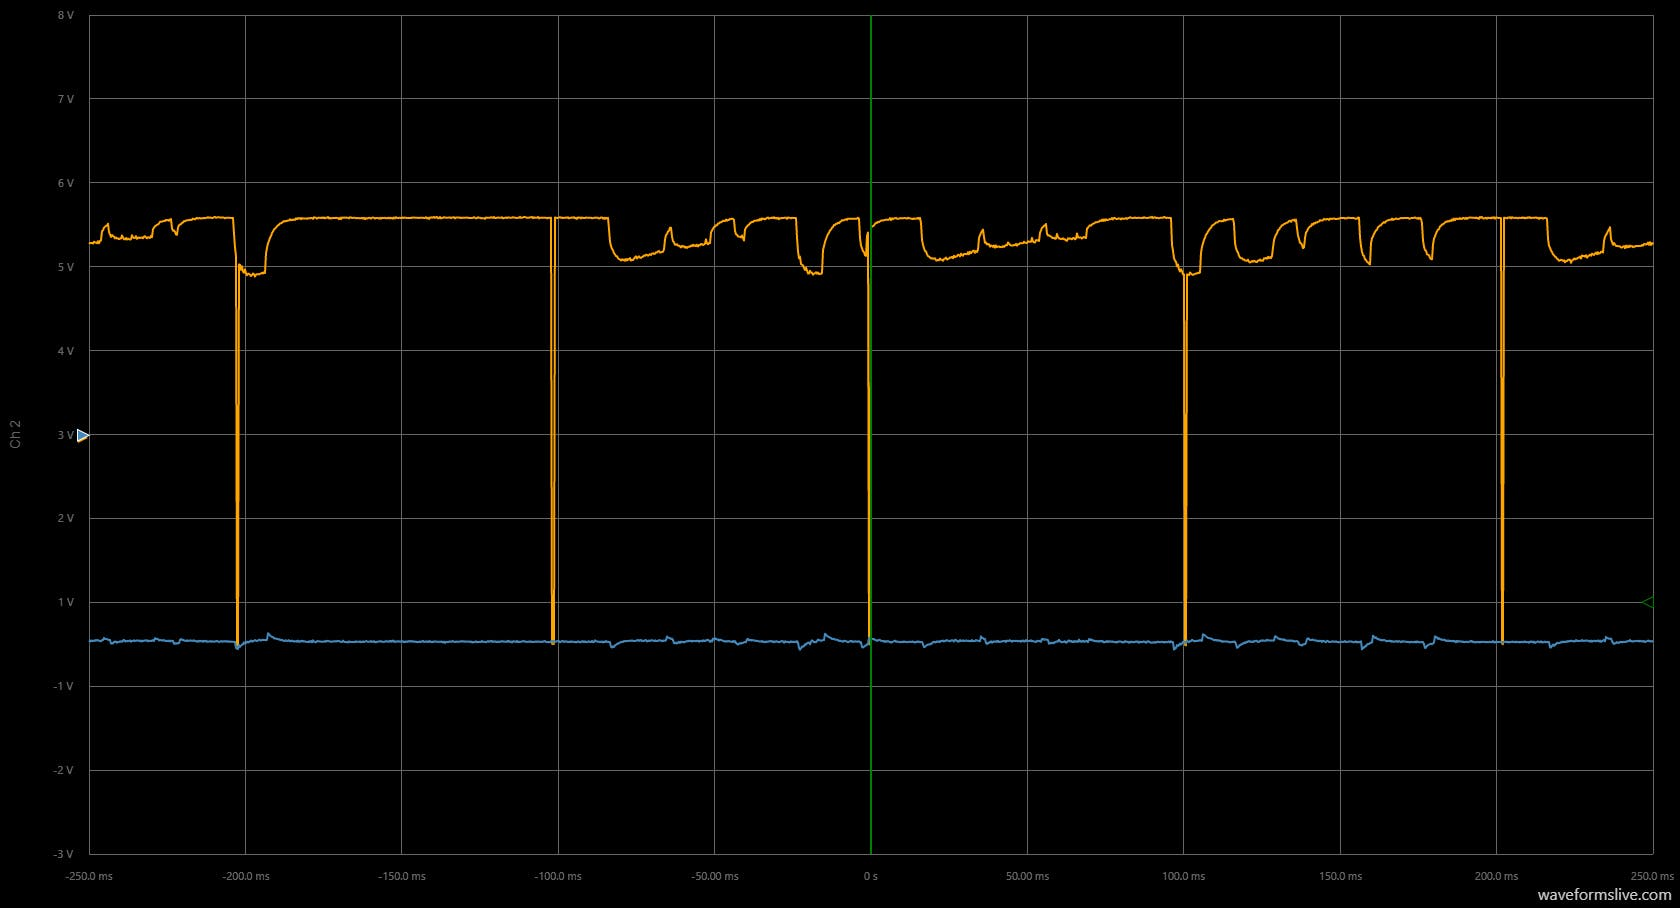 The drops to 0V in the yellow indicate points where the Arduino is measuring the voltage divider.